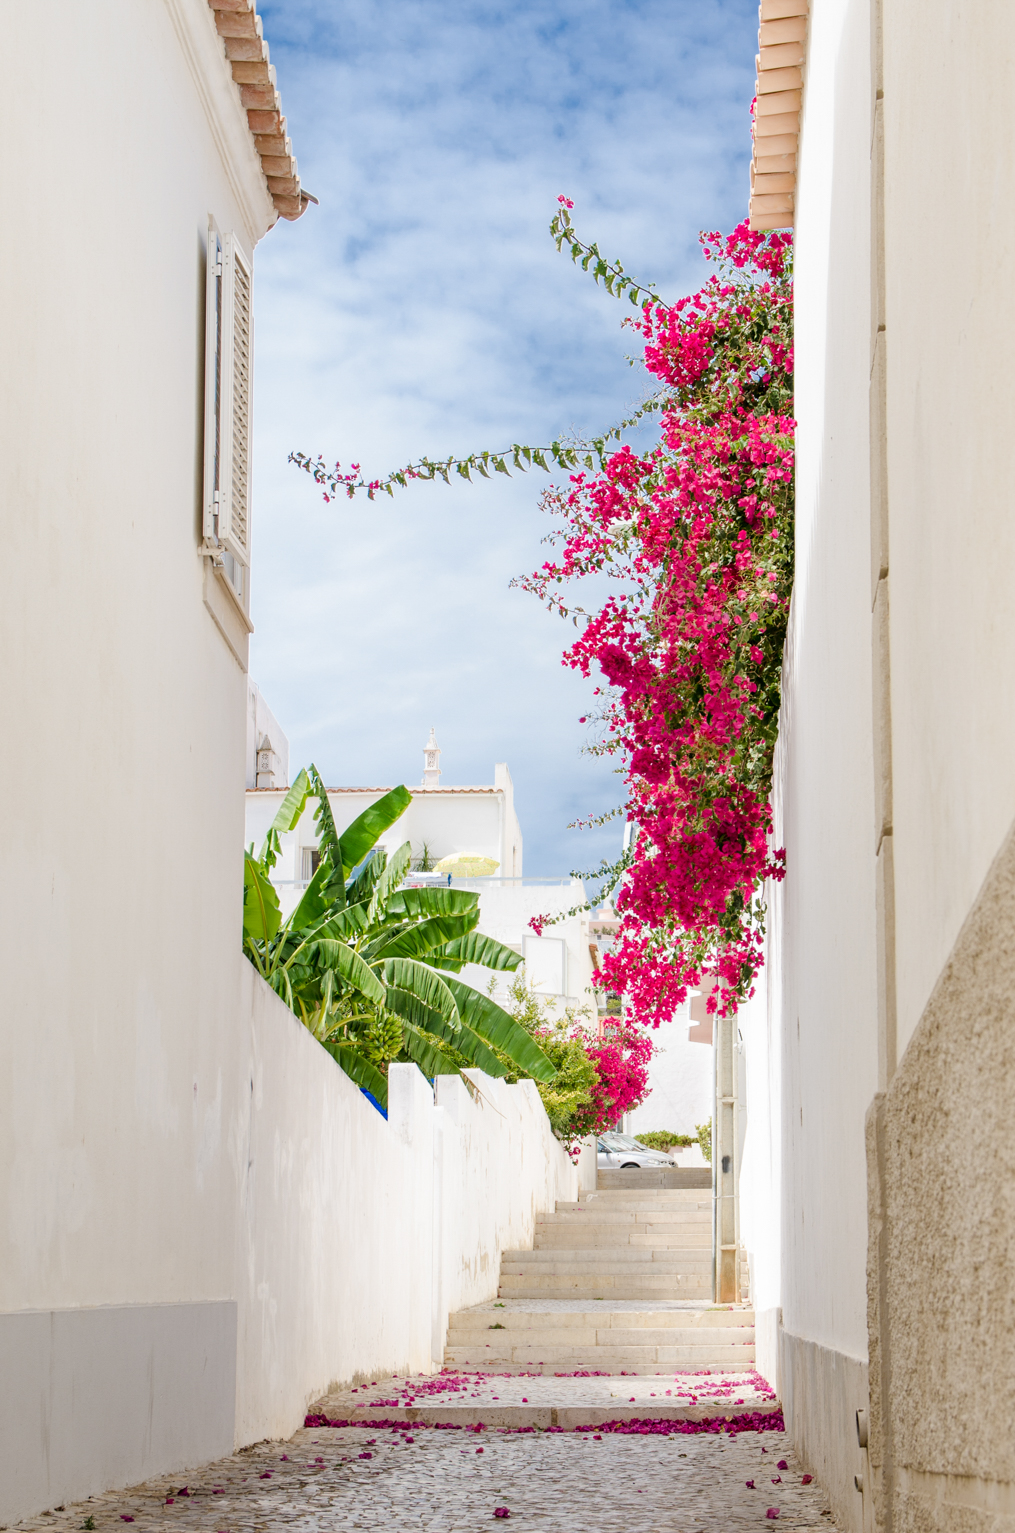 Streets of Albufeira, Portugal